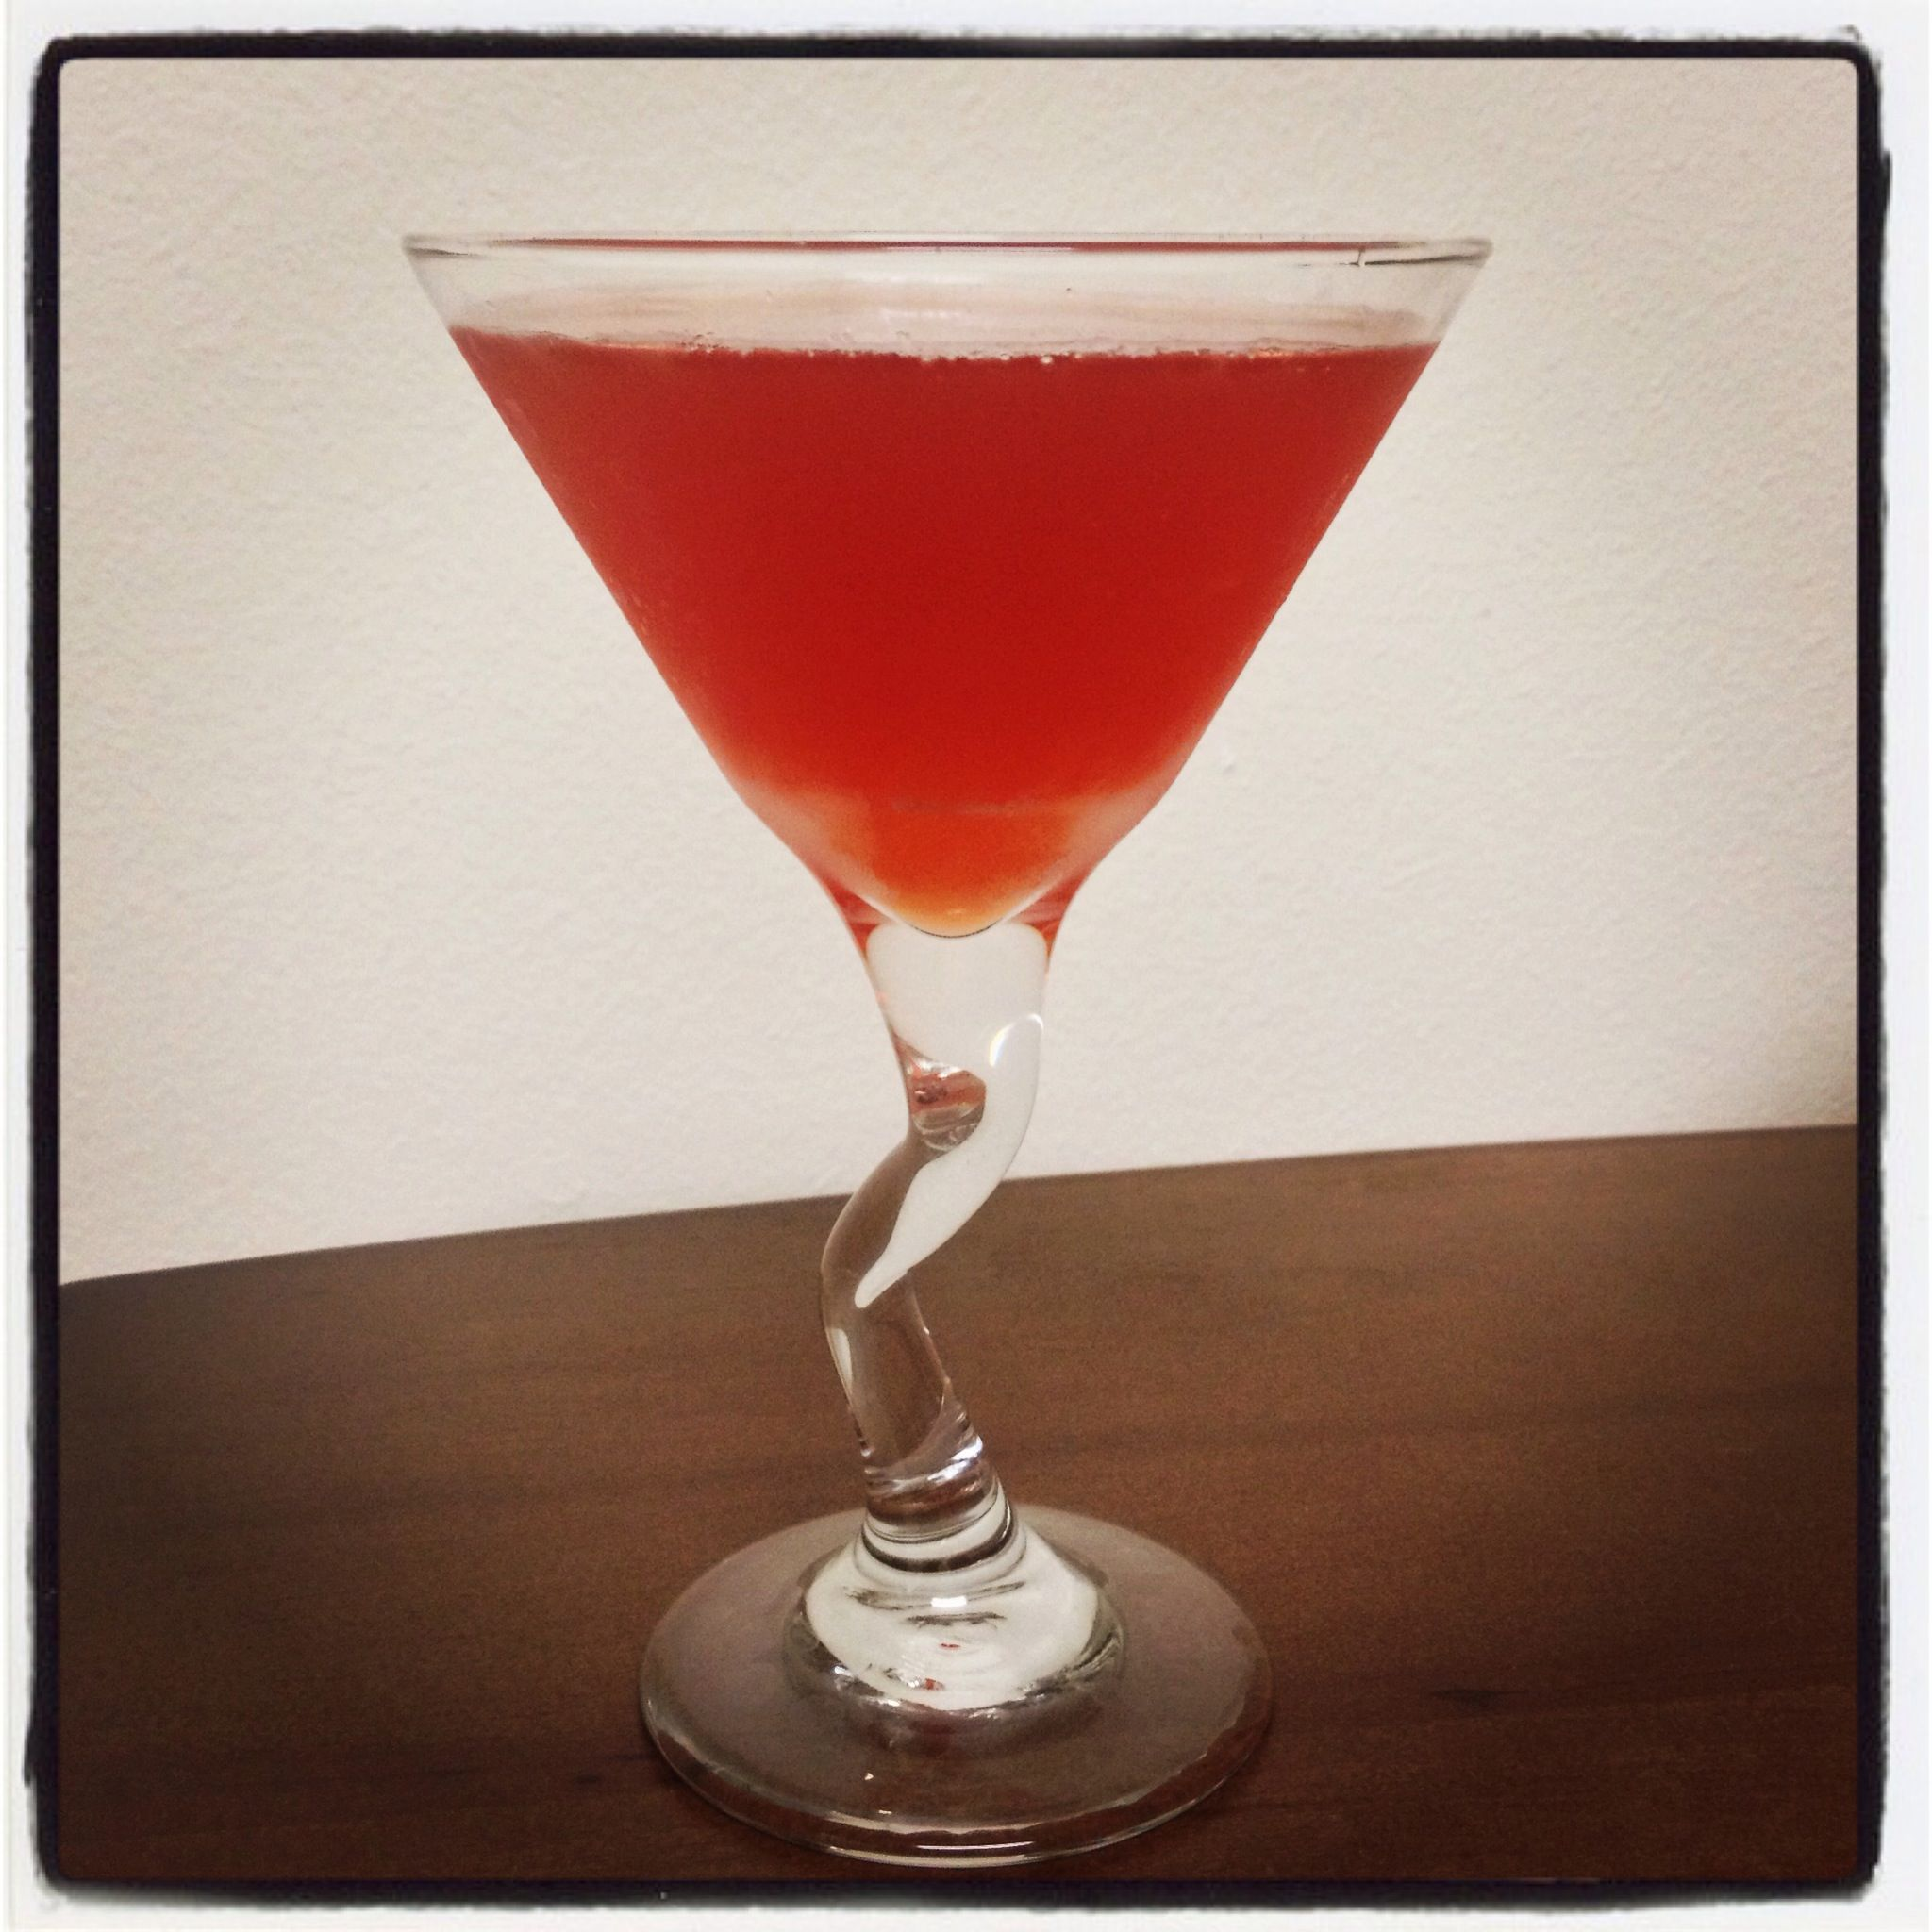 How To Make A Cherry Lifesaver (Cocktail)